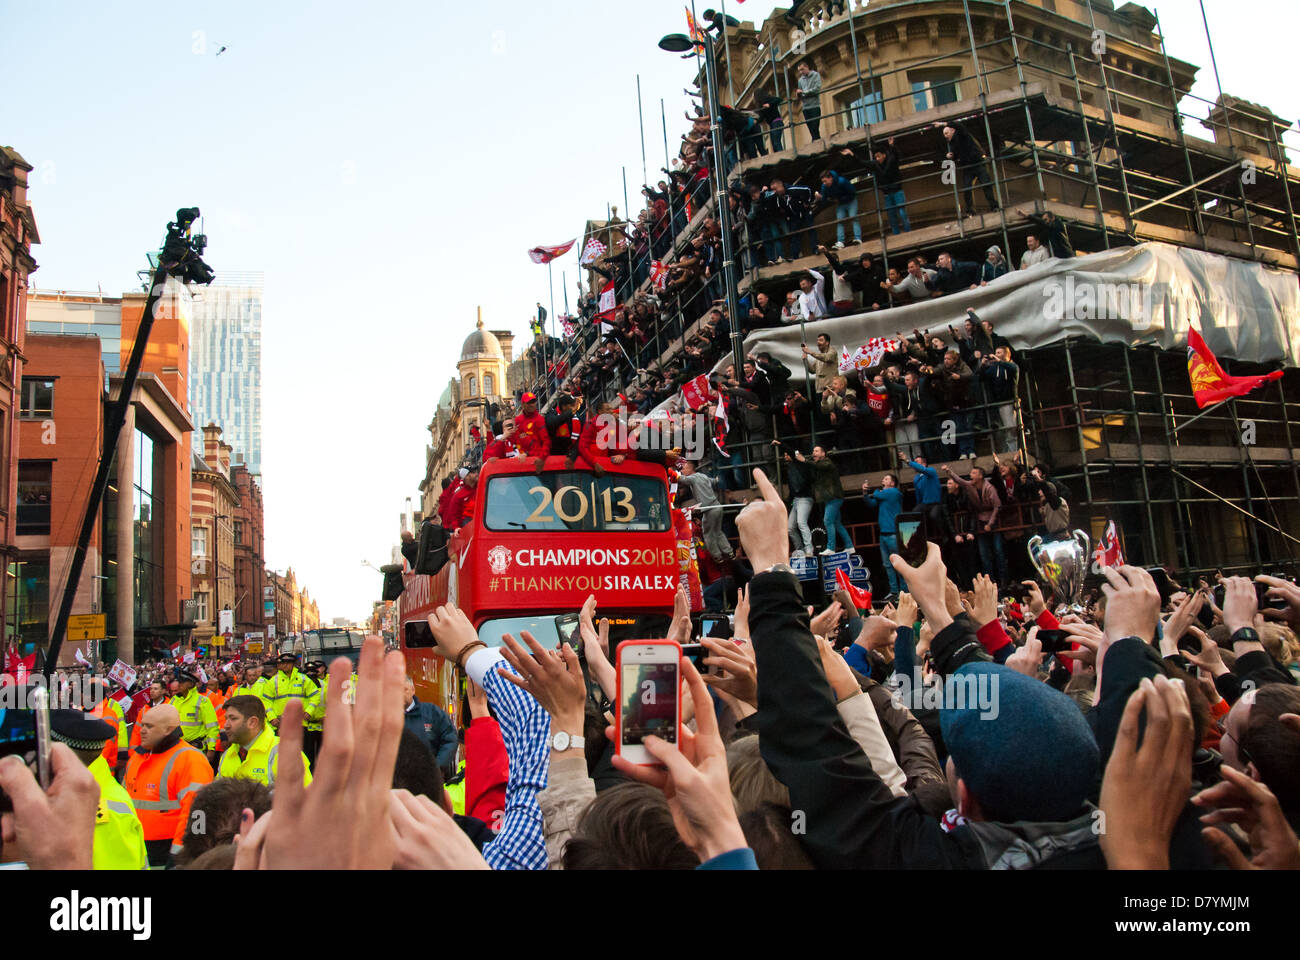 Supporters celebrate at Manchester United's Premier League victory parade. - Stock Image